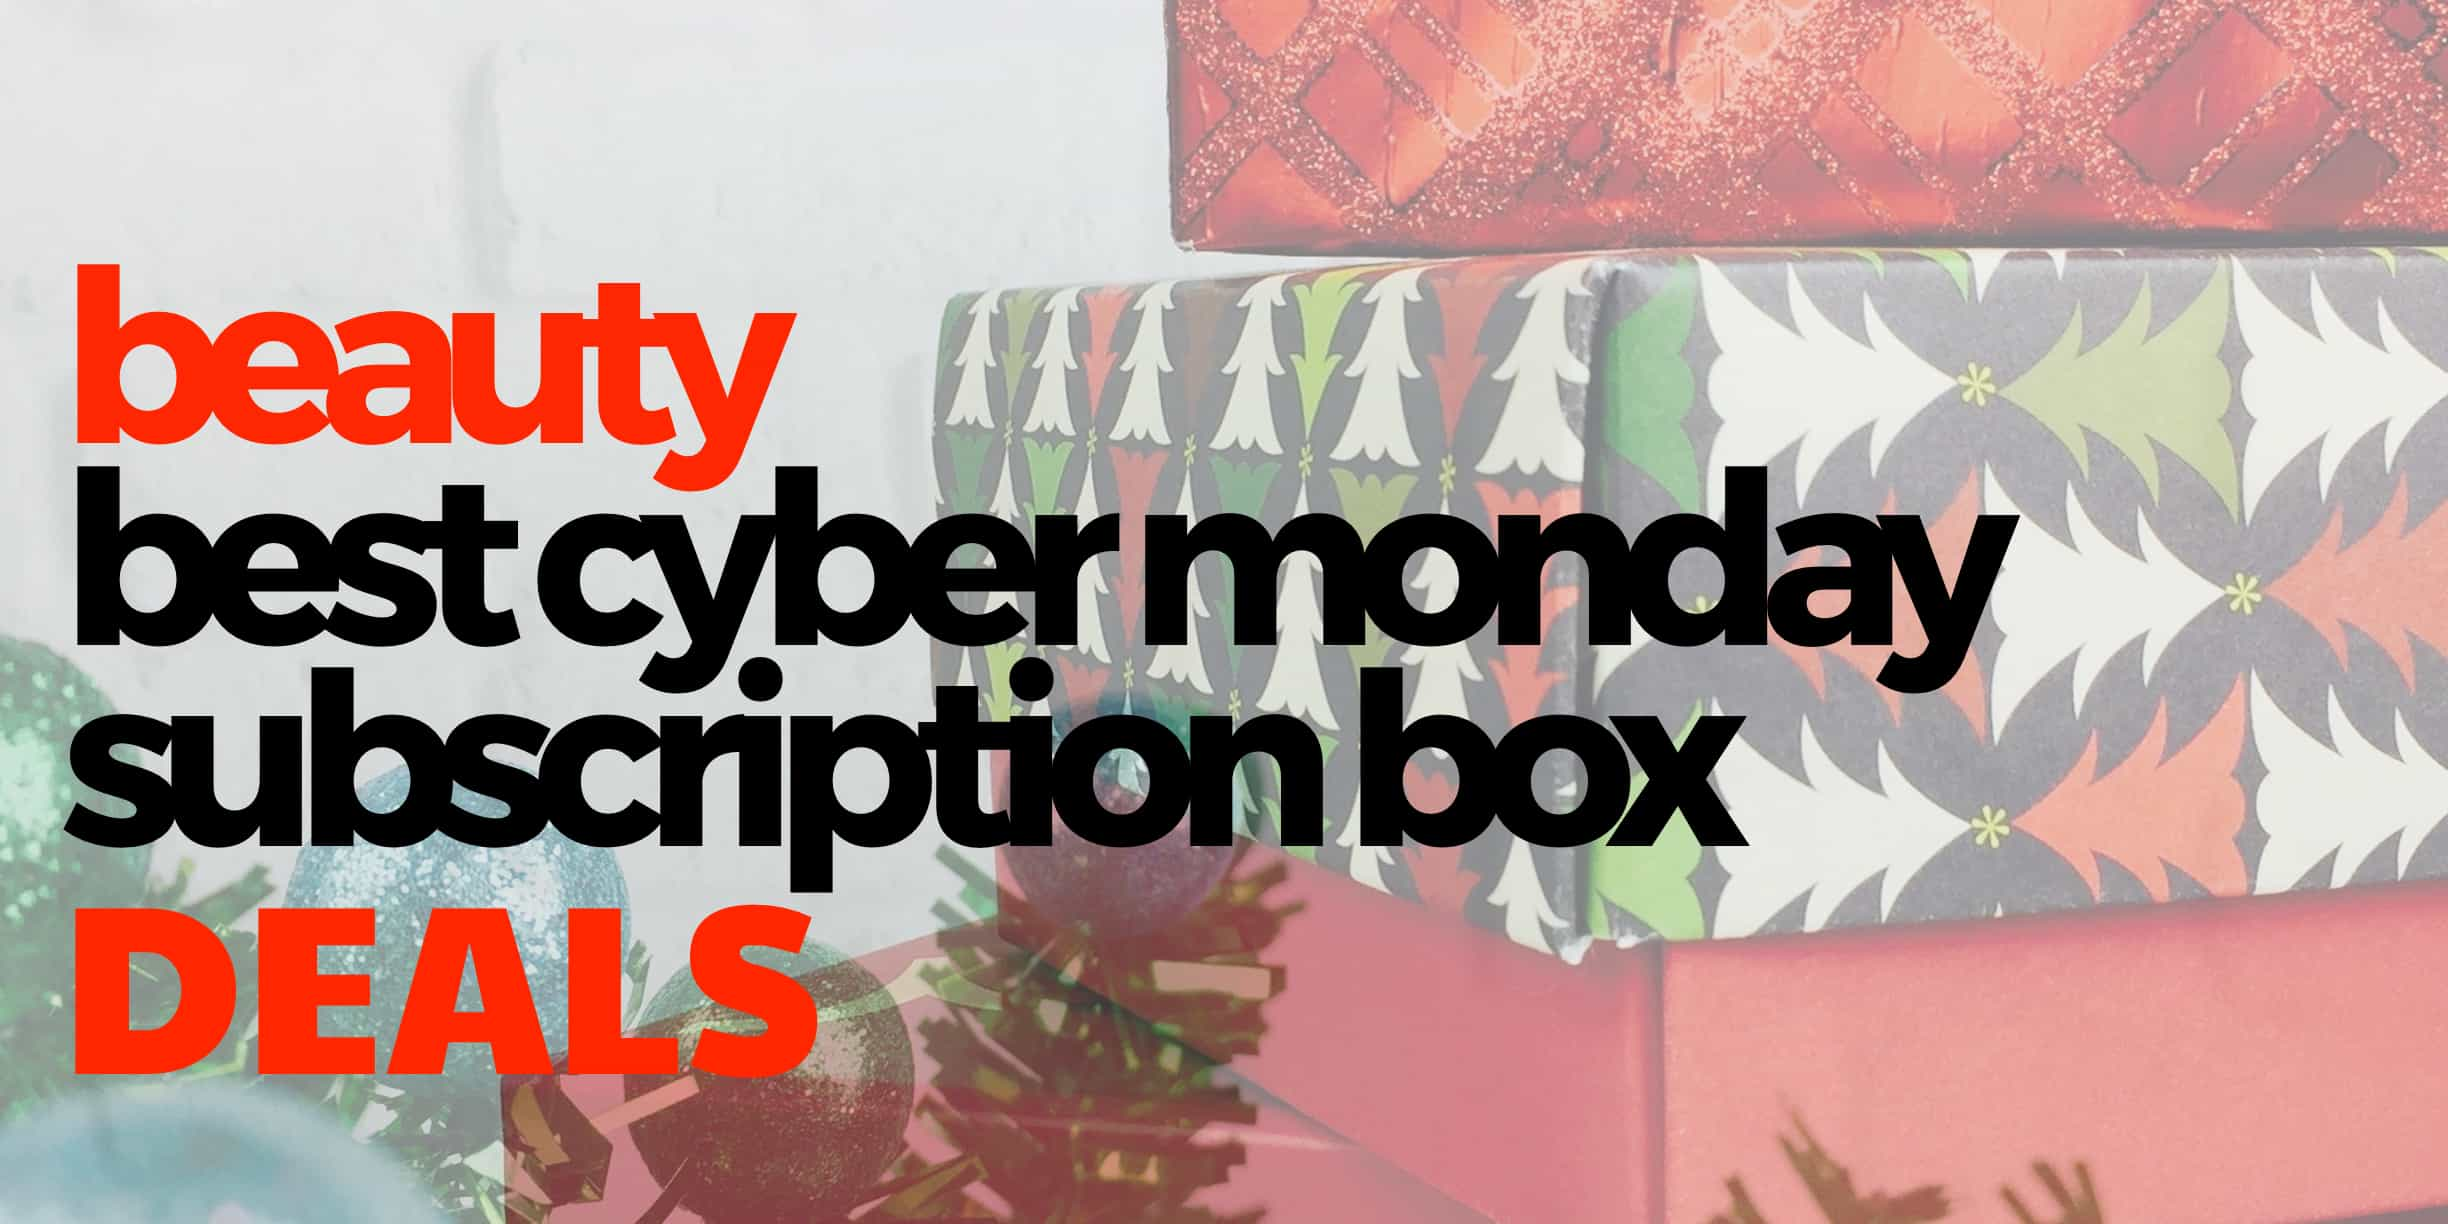 9 Best Cyber Monday Beauty Subscription Box Deals!